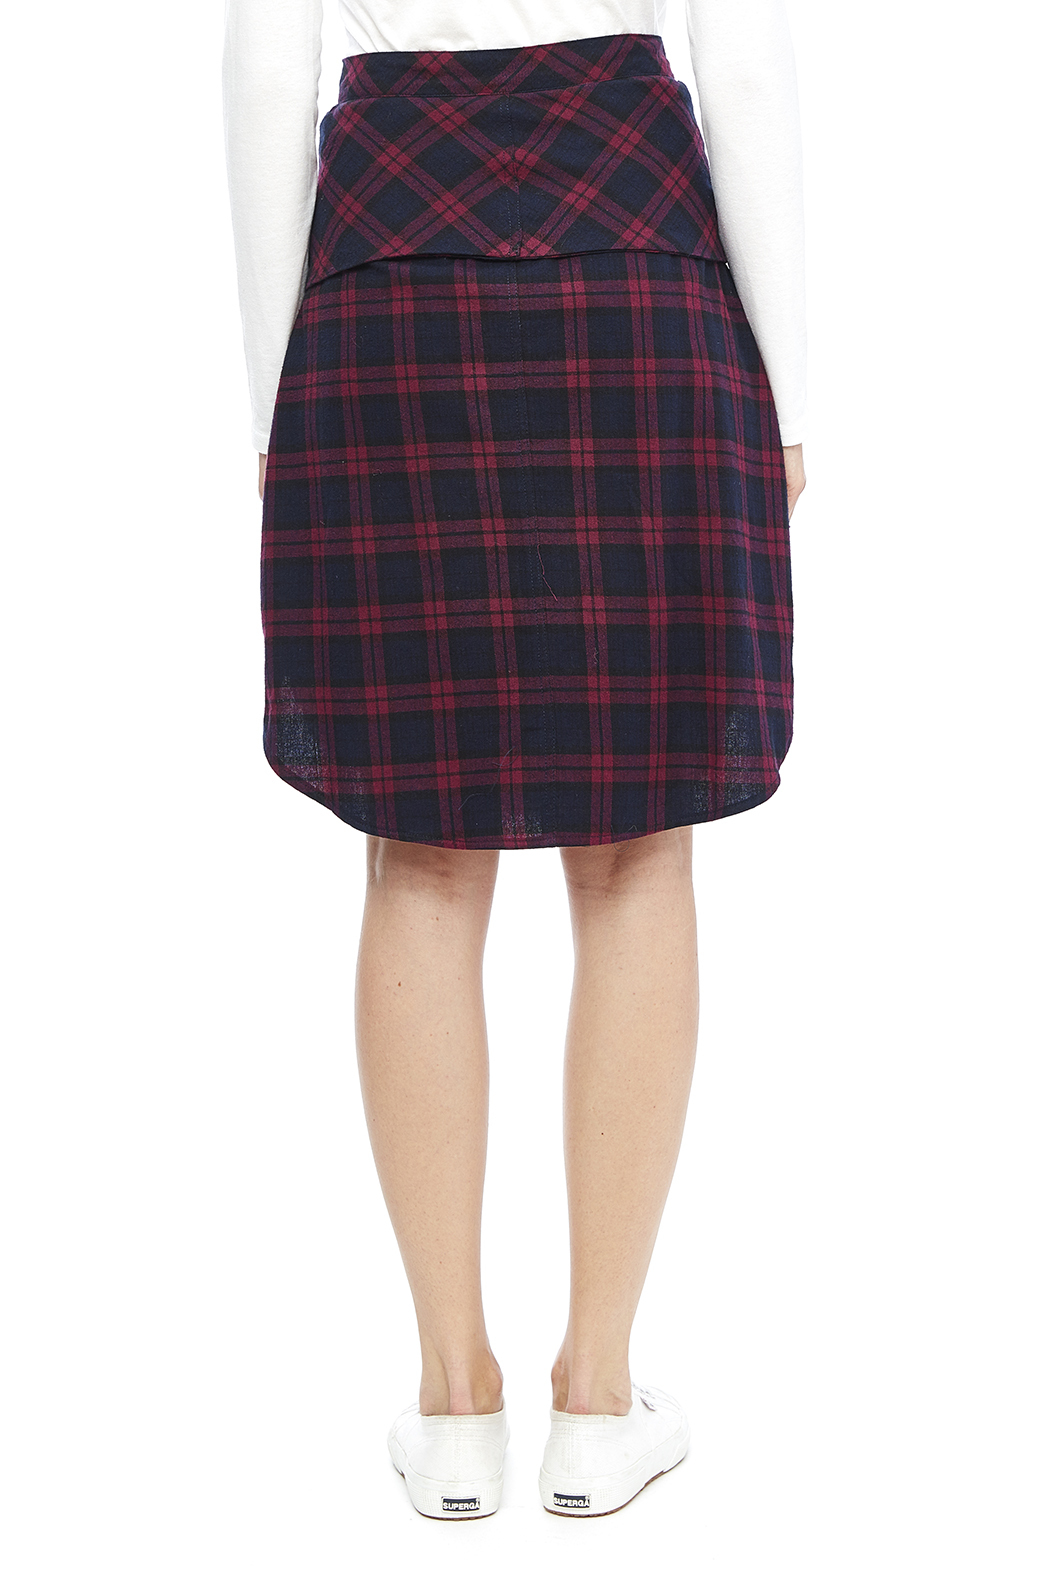 Do & Be Plaid Tie Skirt - Back Cropped Image